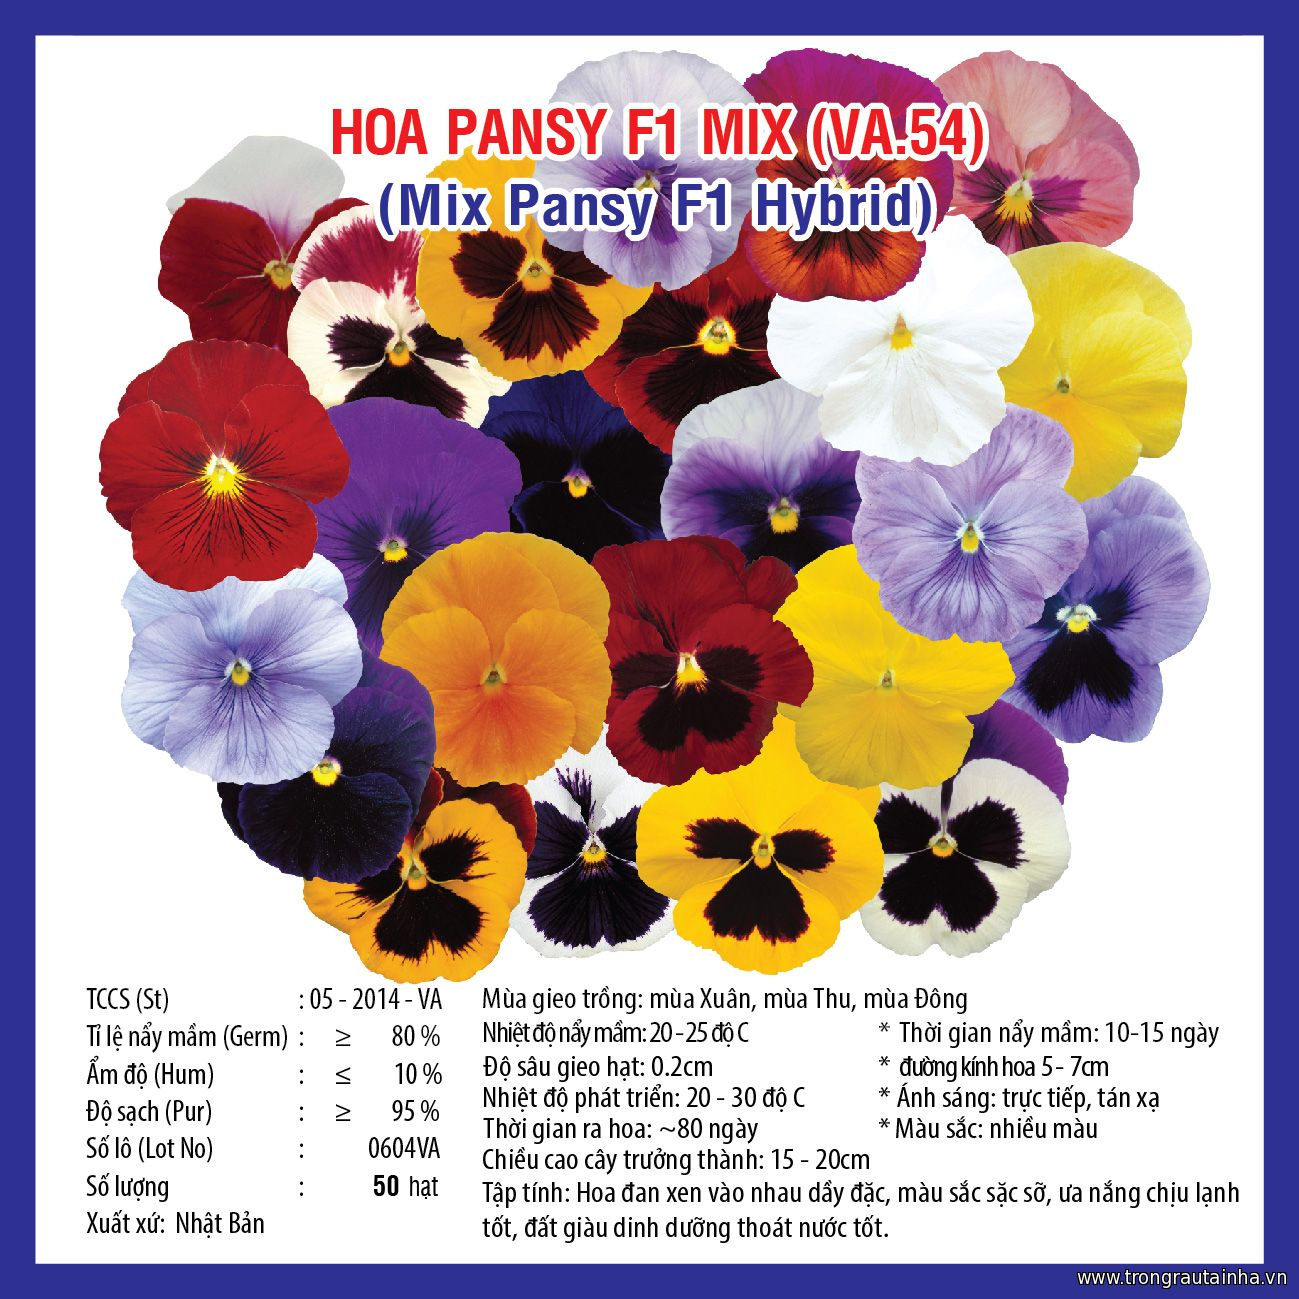 HOA PANSY MIX F1